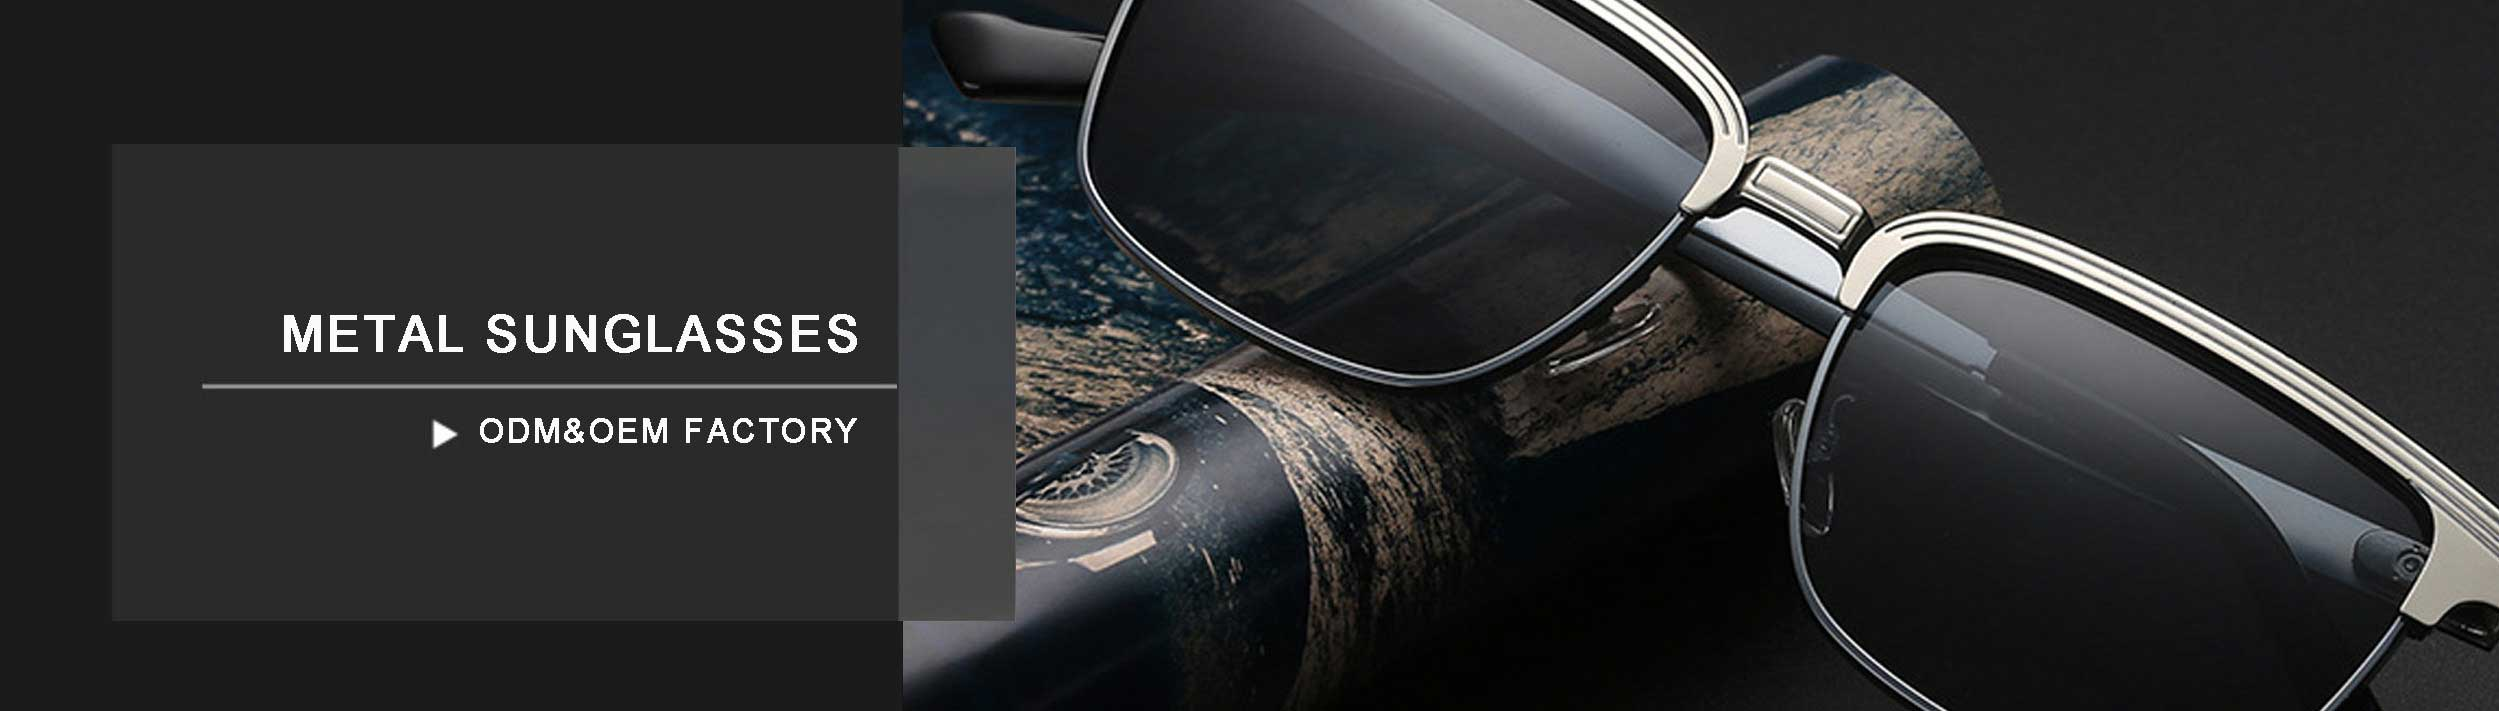 metal Sunglasses category banner